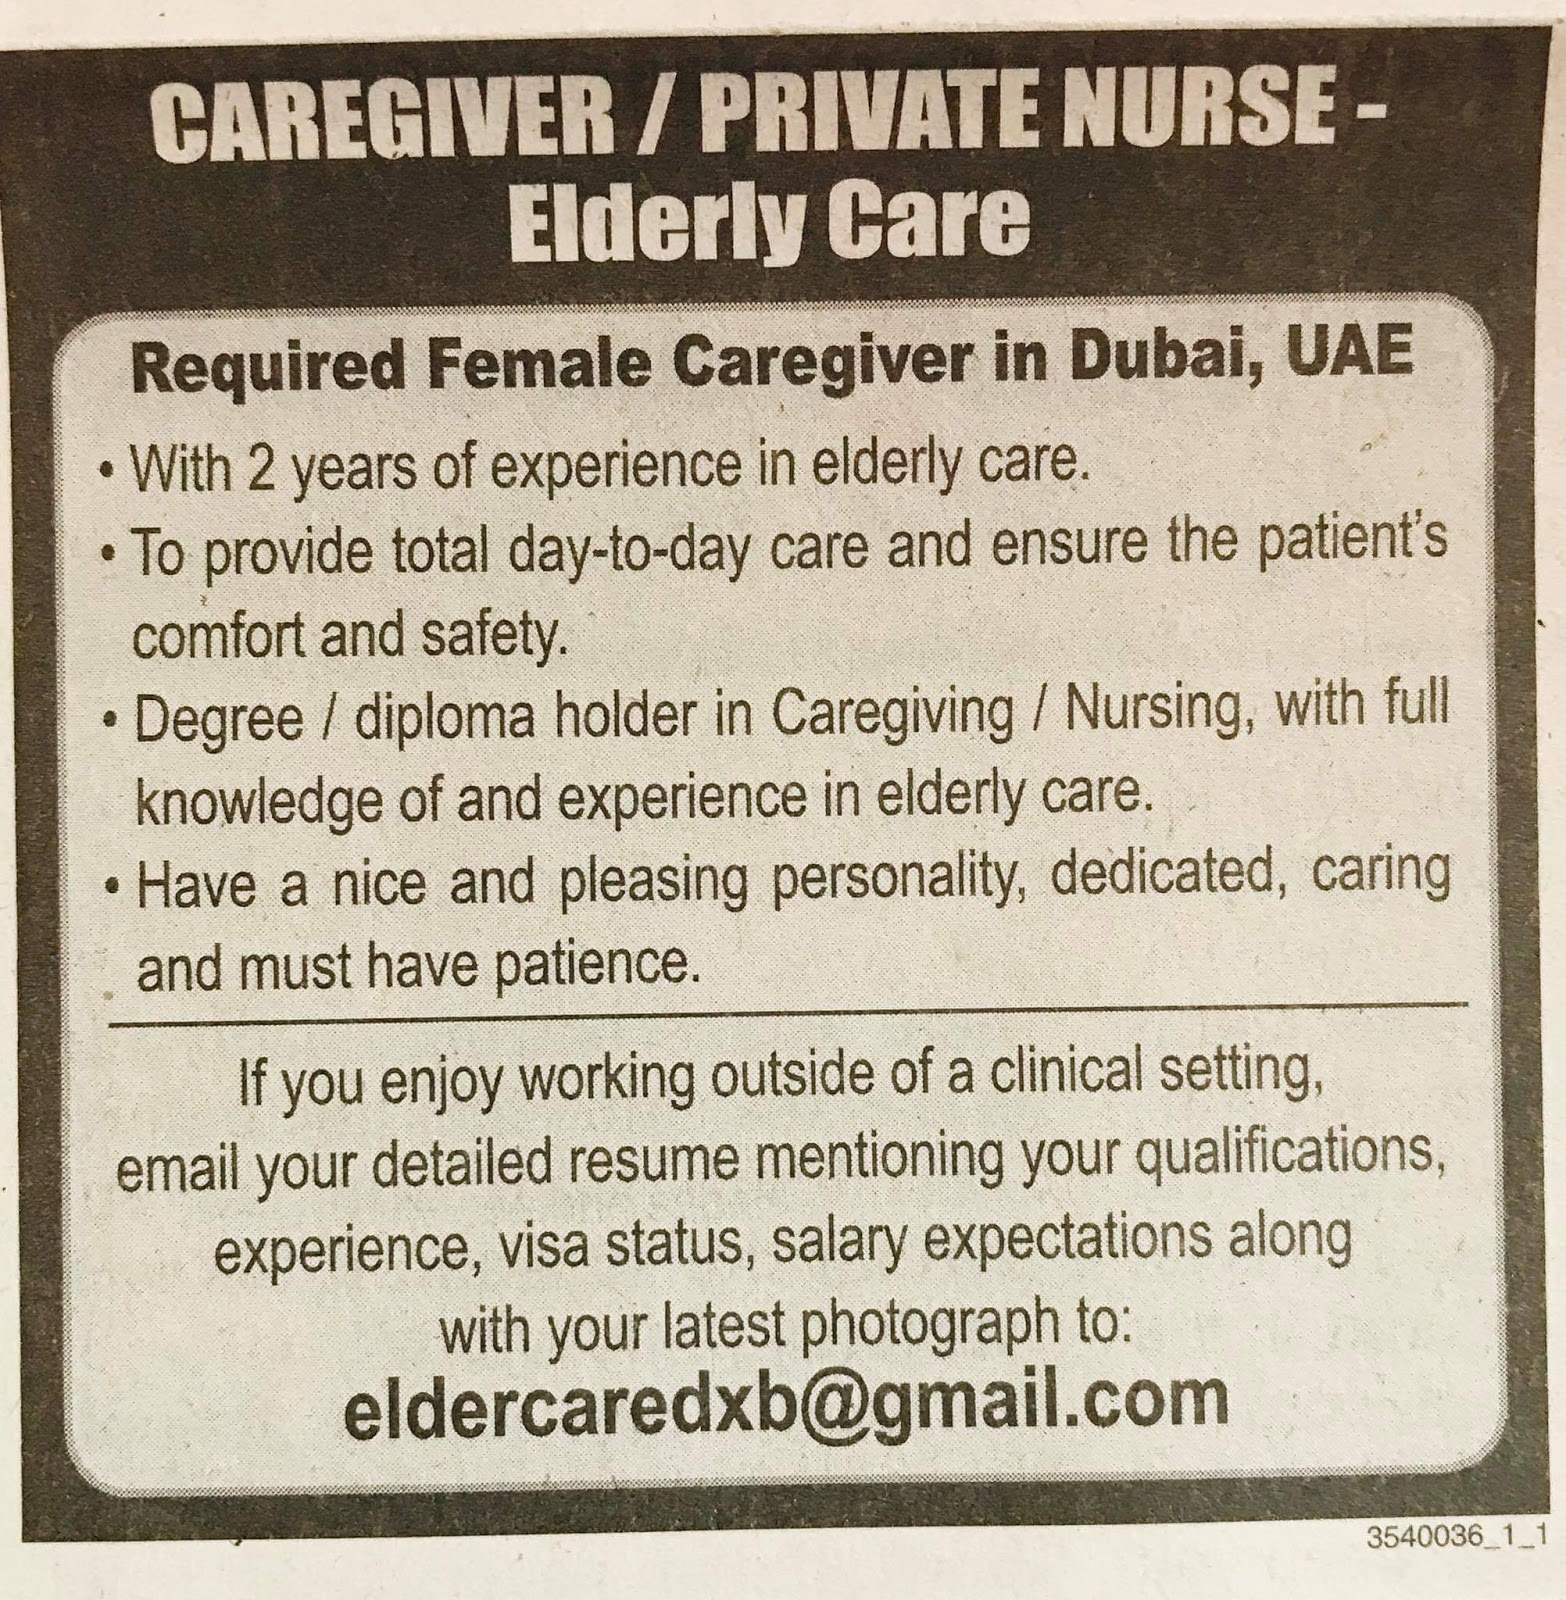 Required Caregiver/private nurse for UAE JOBS Local Hiring Khaleej